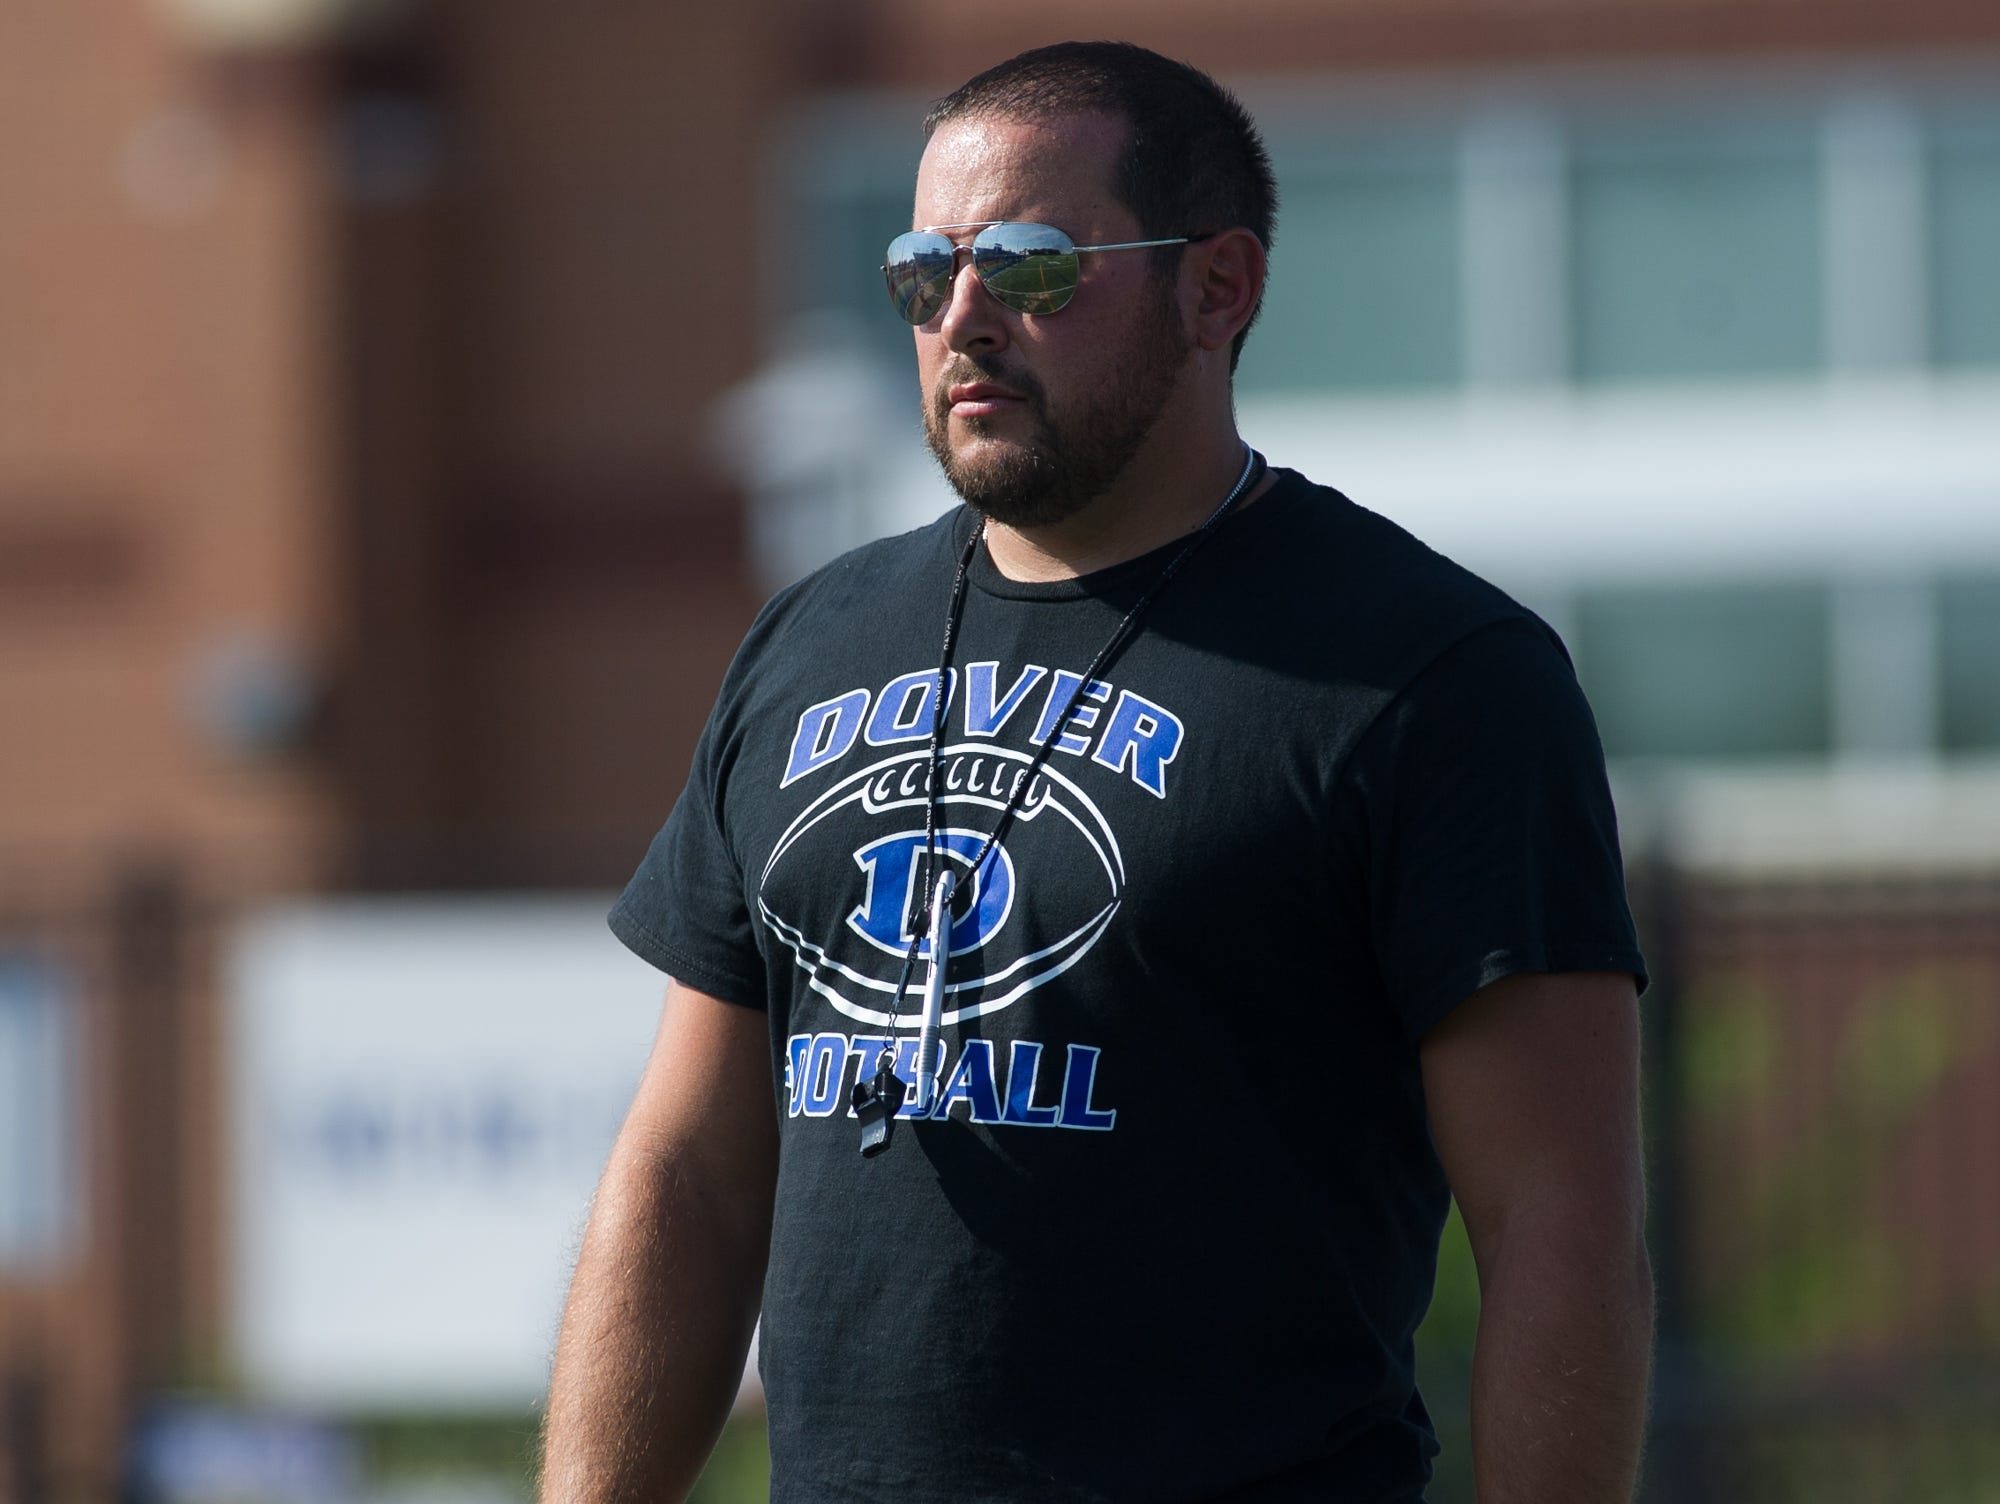 Dover High School's new football coach Rudy Simonetti during their pre season scrimmage against Archmere.